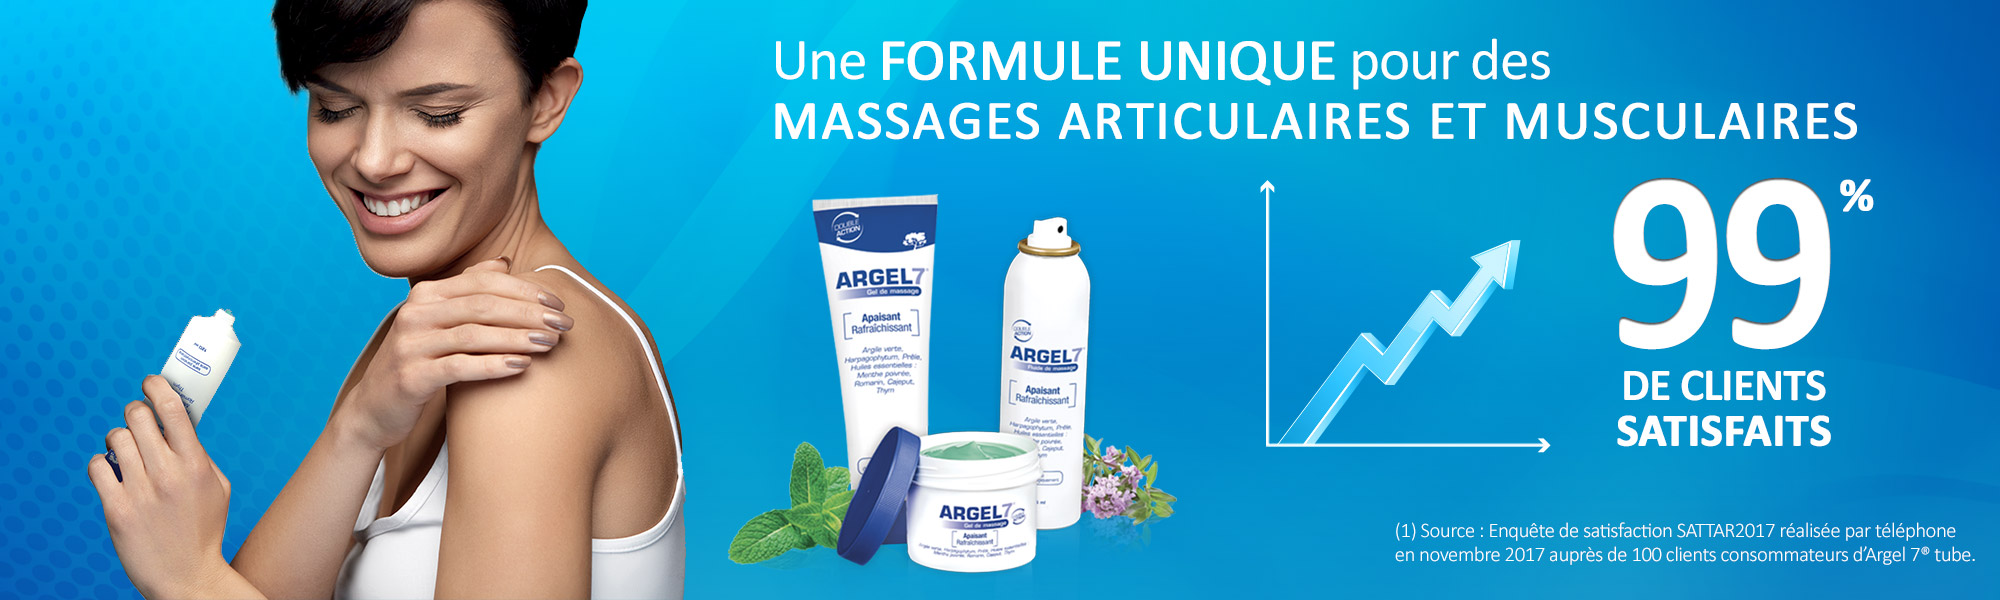 Laboratoire NaturAvignon - La gamme Argel 7 - satisfaction clients